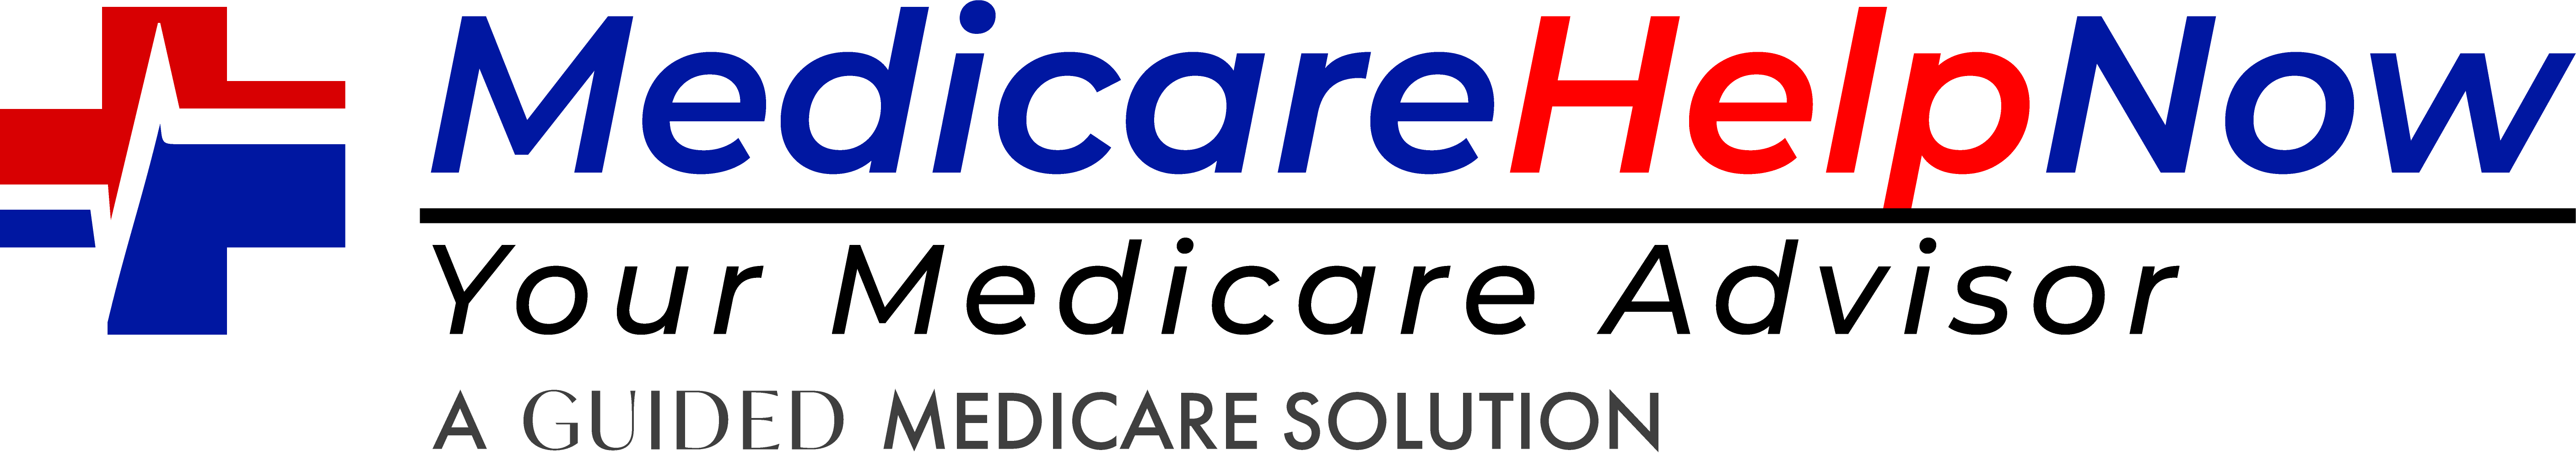 Medicare Help Now Guided – Logo 2